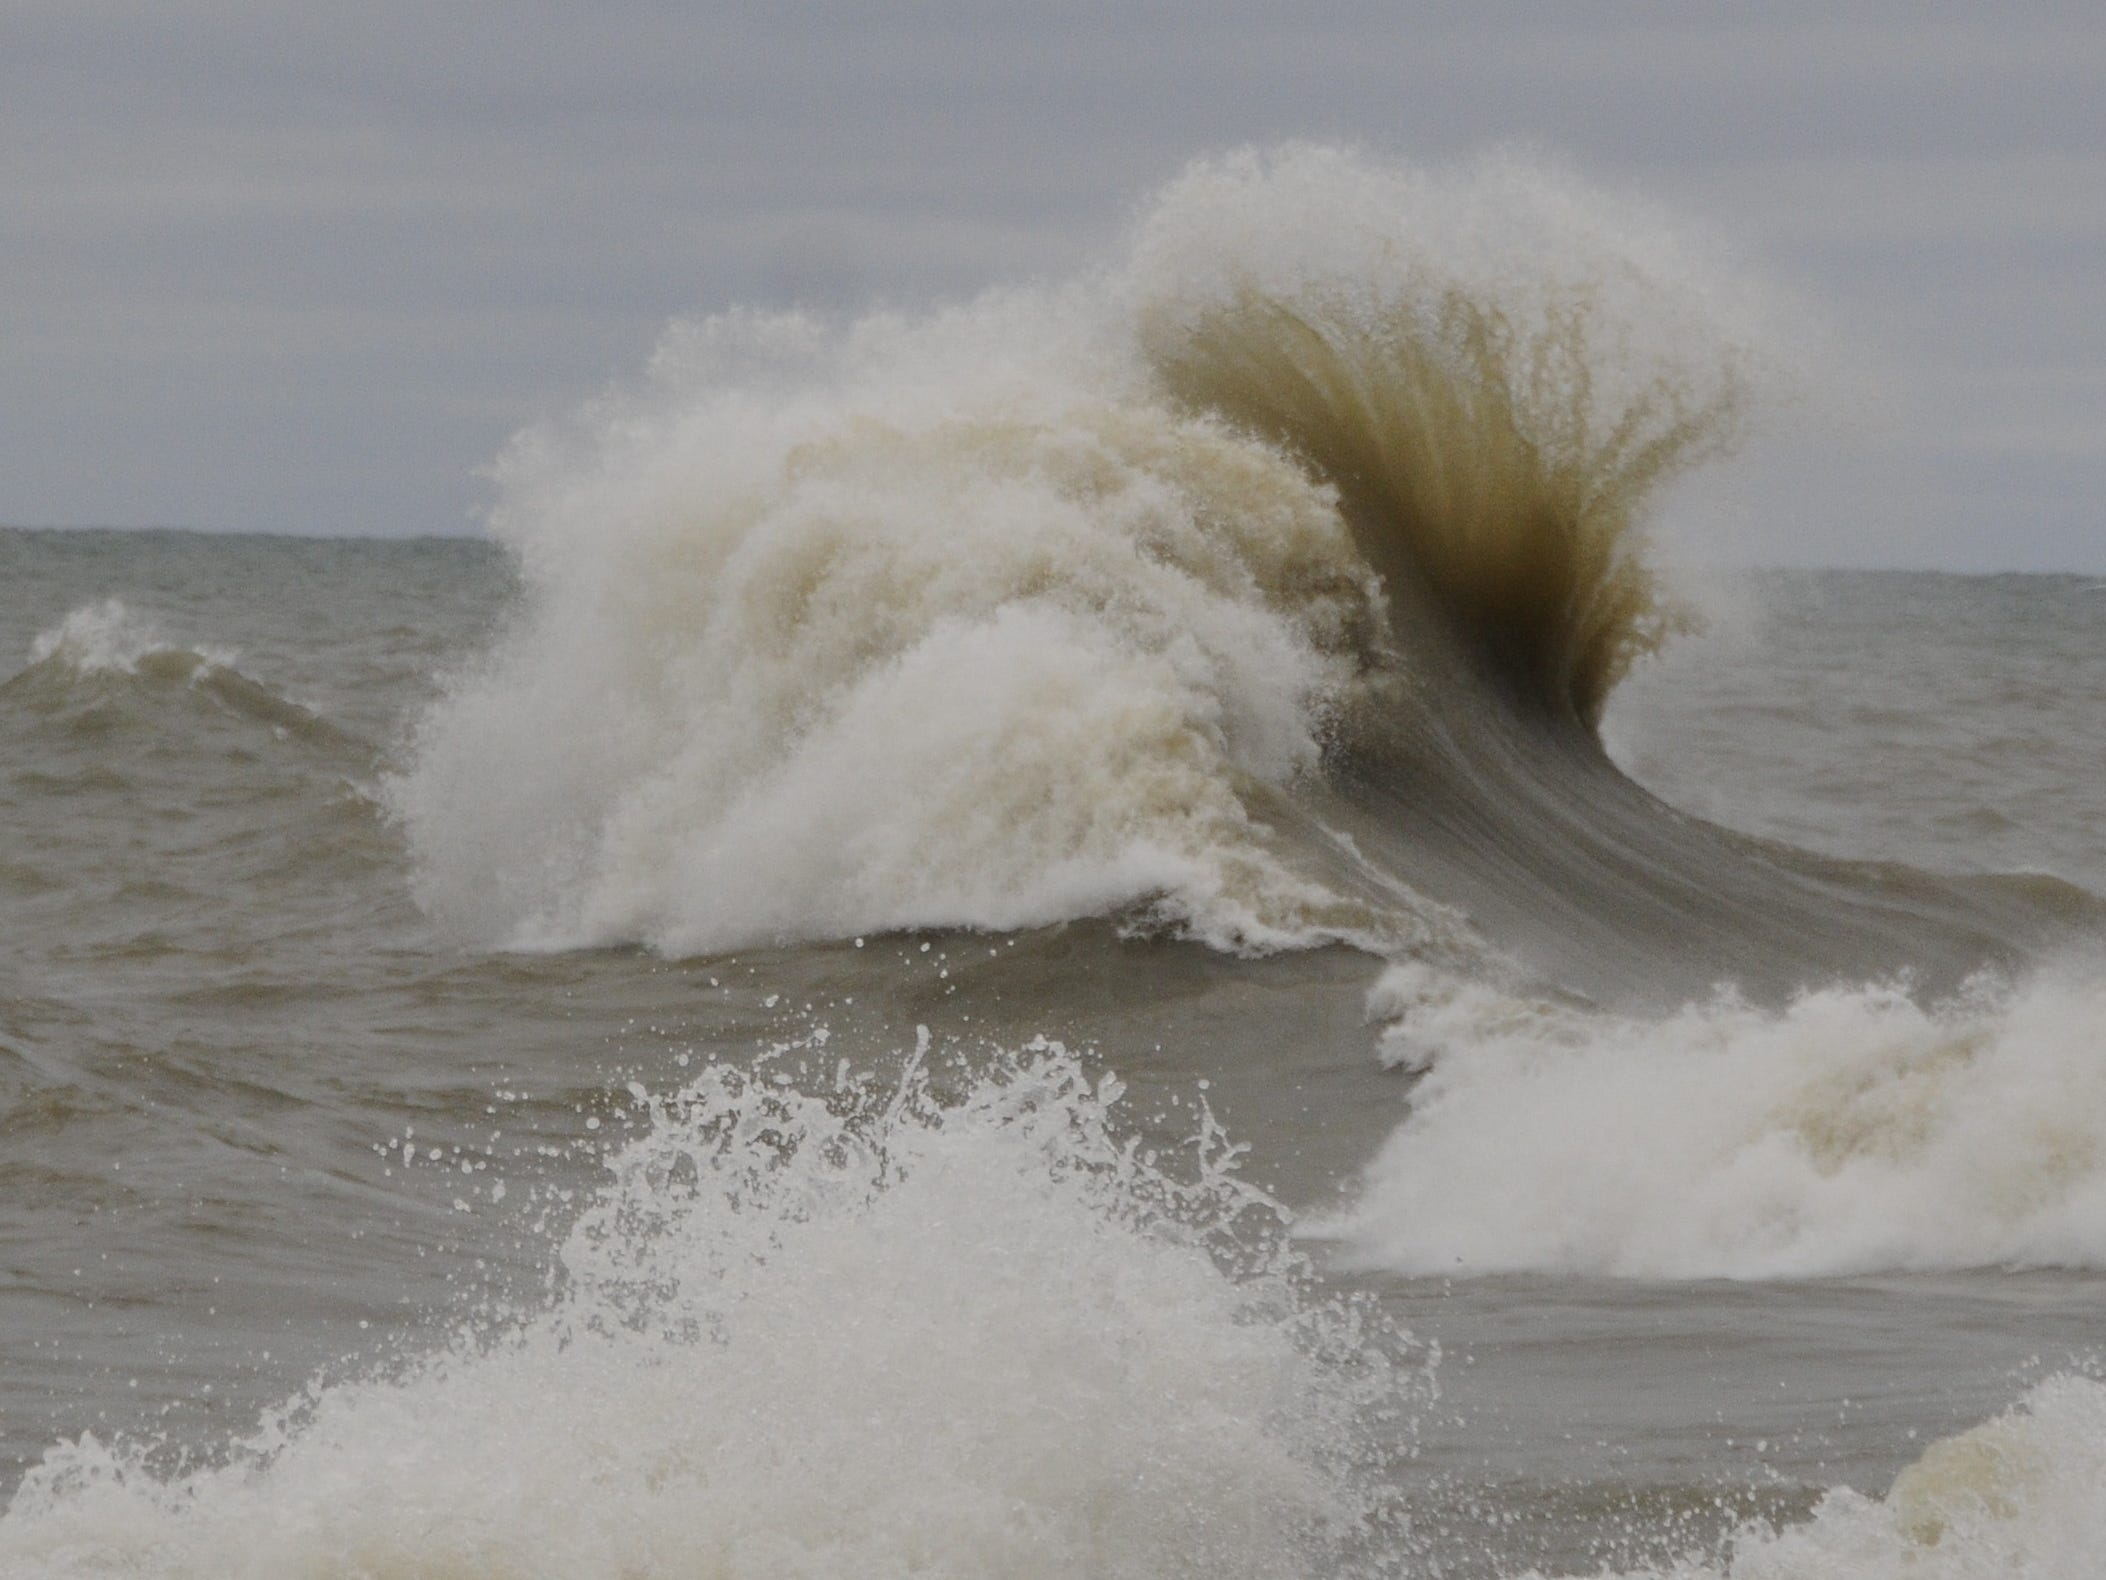 Two waves smash into each other in Lake Huron near Port Sanilac on New Year's Day 2019.